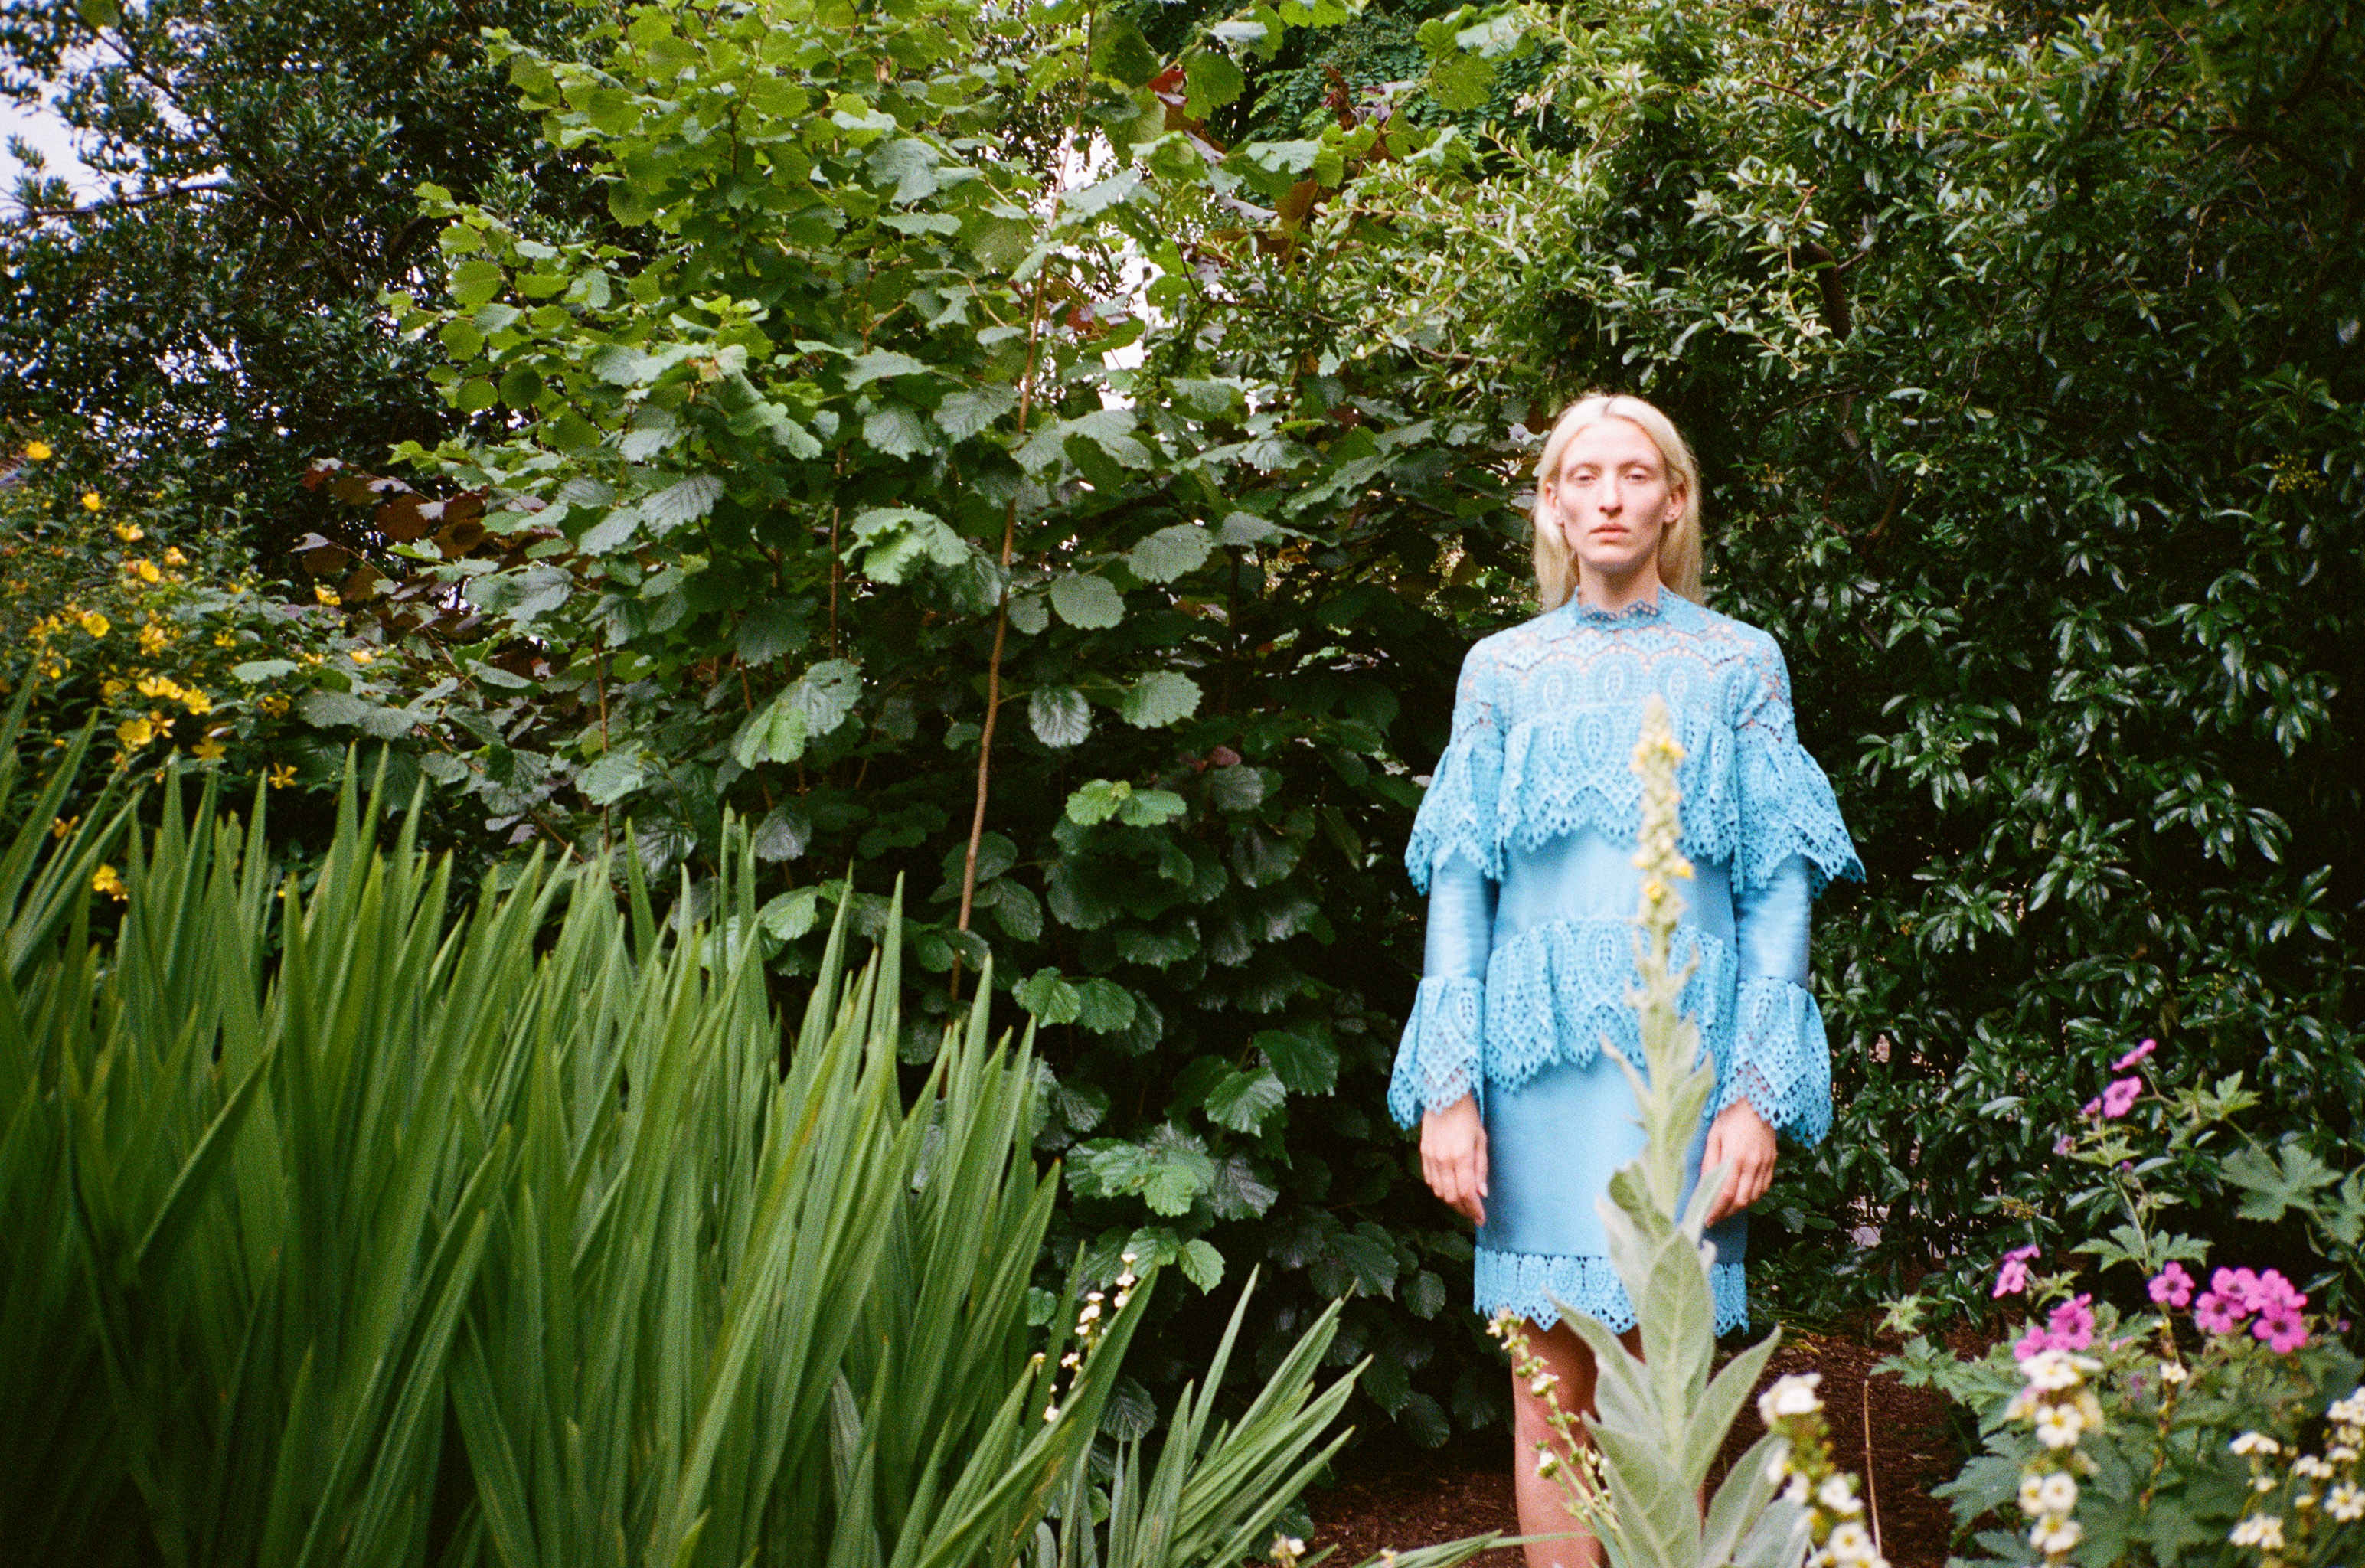 Erdem Moralioglu shot his first fashion campaign, for Matches, in the garden near his London home.